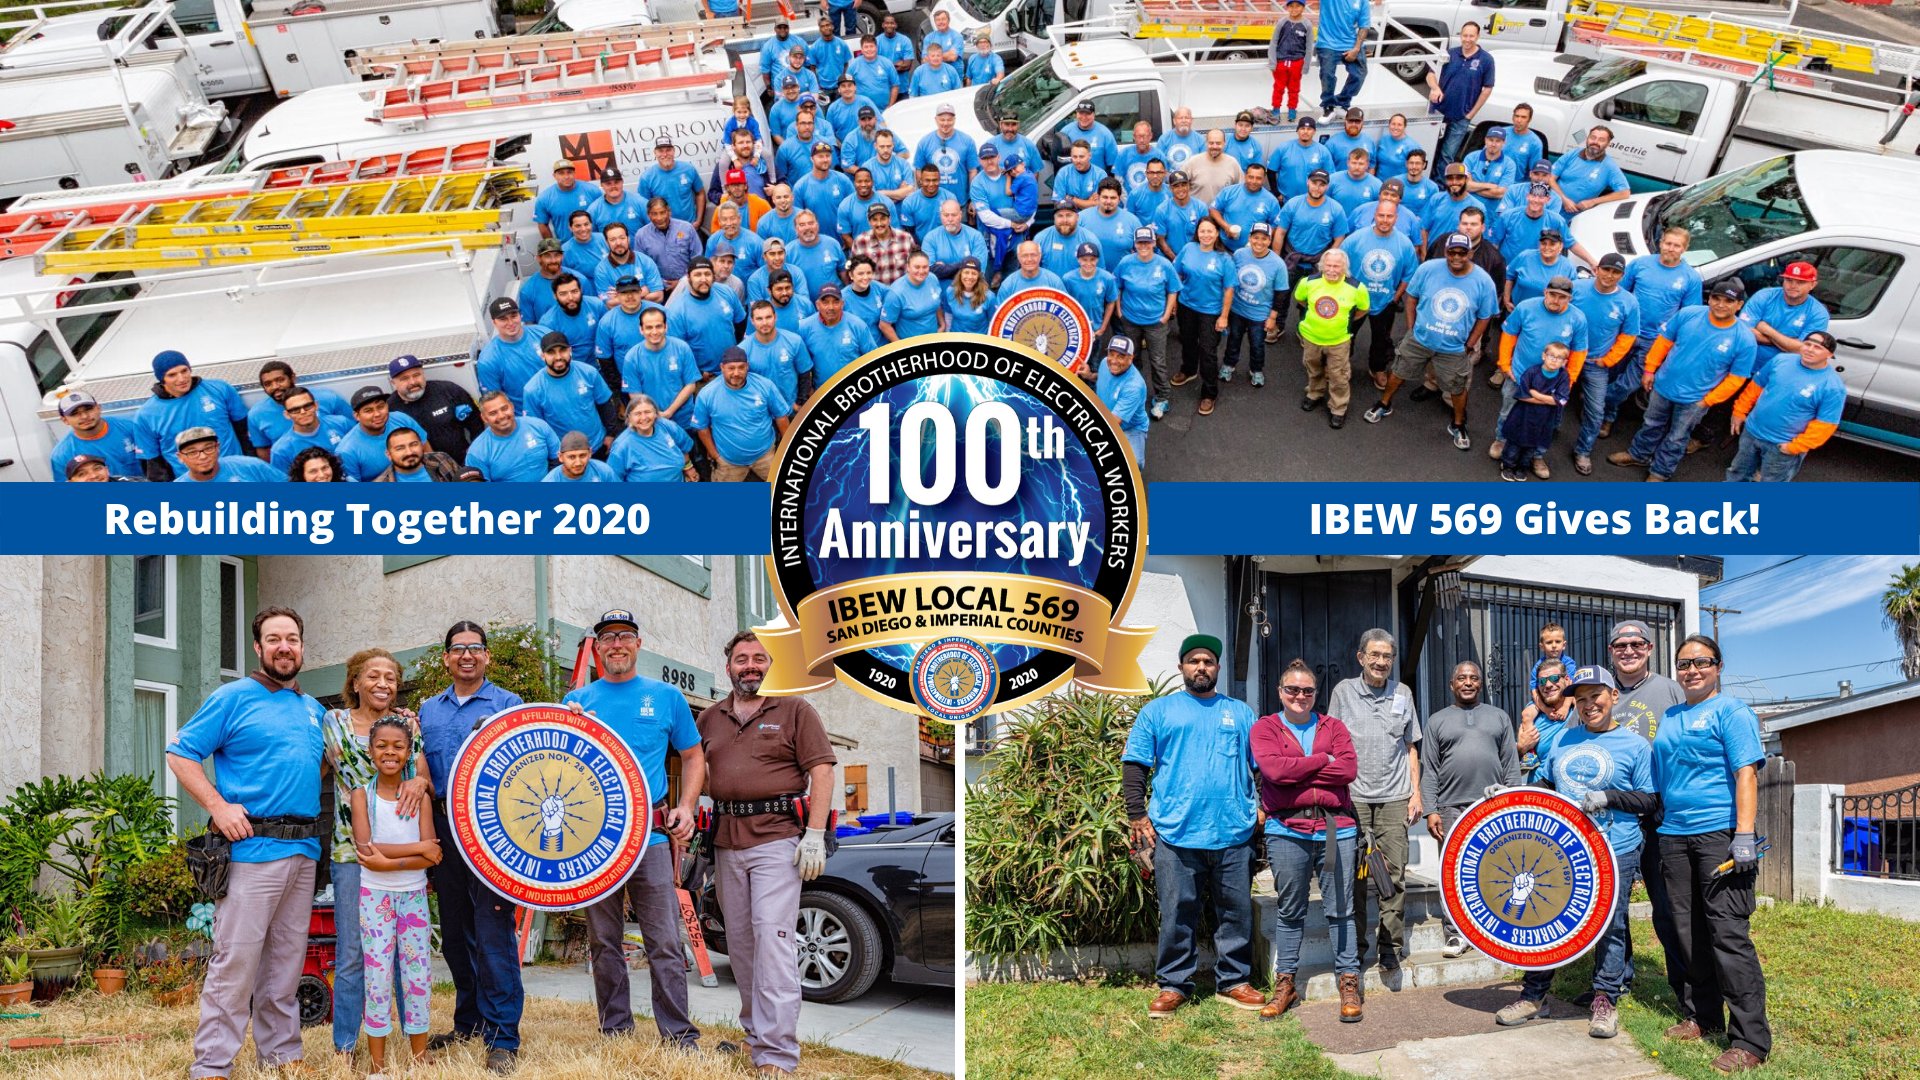 Copy_of_2020_letter_carriers_annual_food_drive___ibew_569_gives_back!